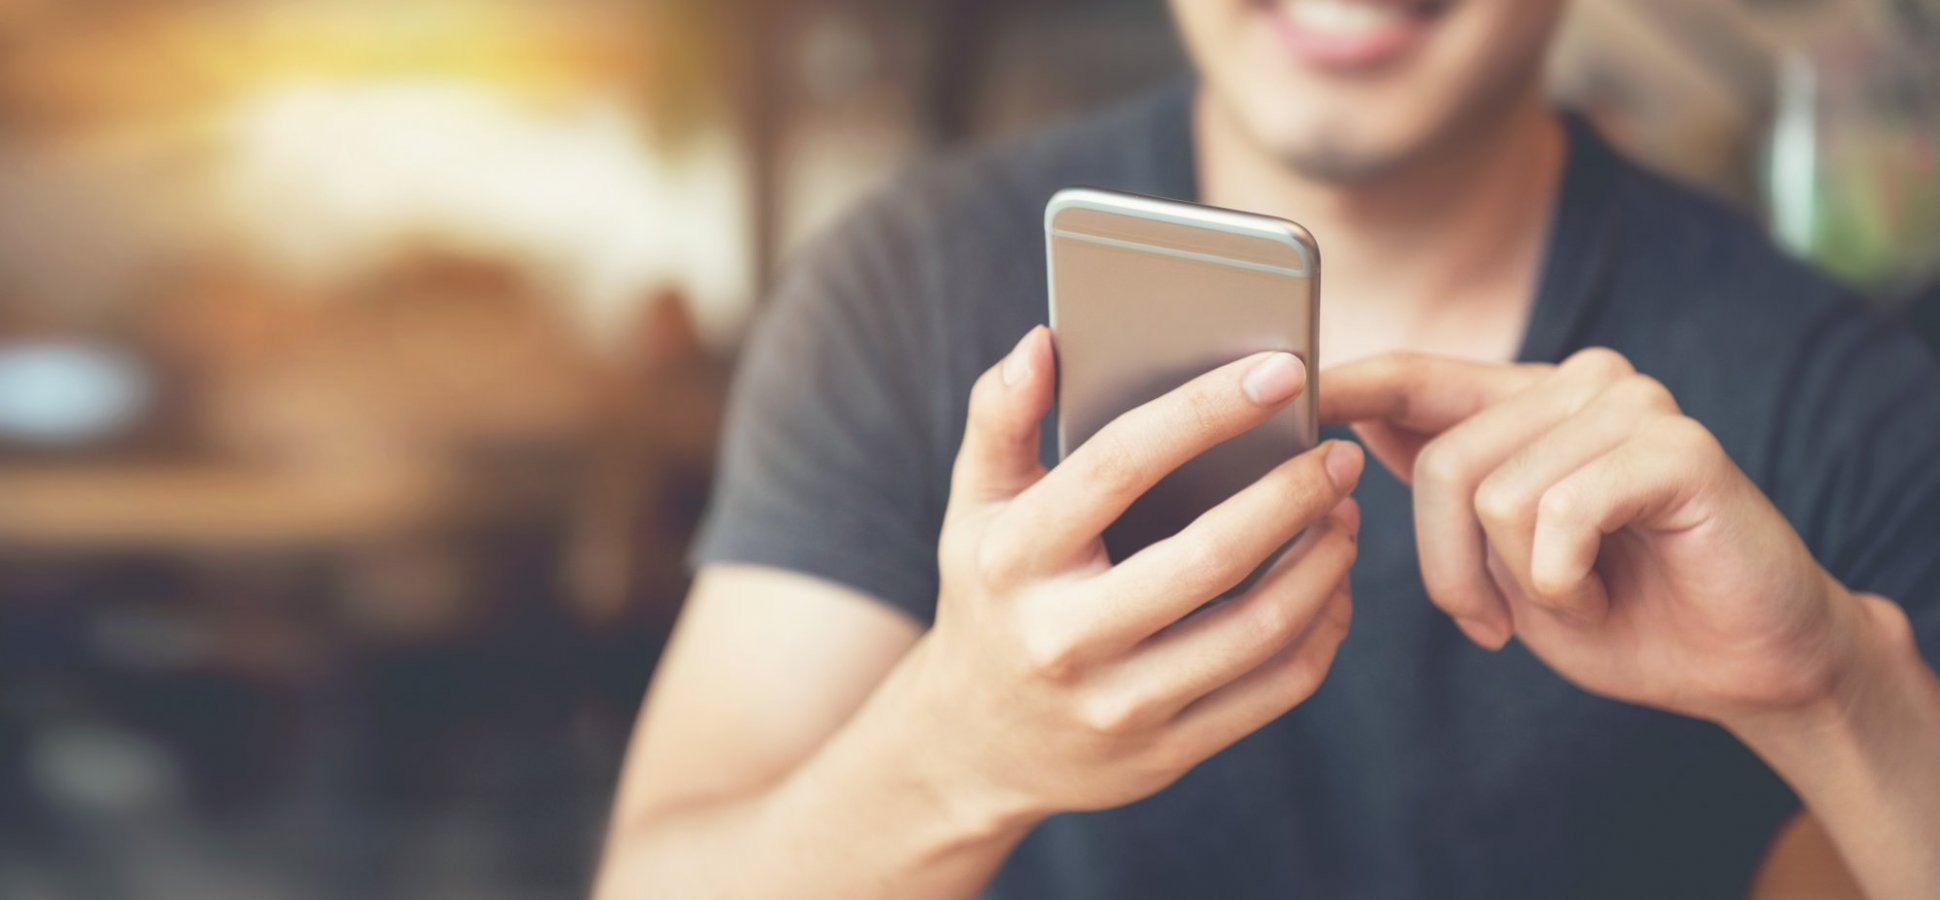 Classic Keyboarding Skills Are Quickly Being Replaced By Mobile Typing, According to Research